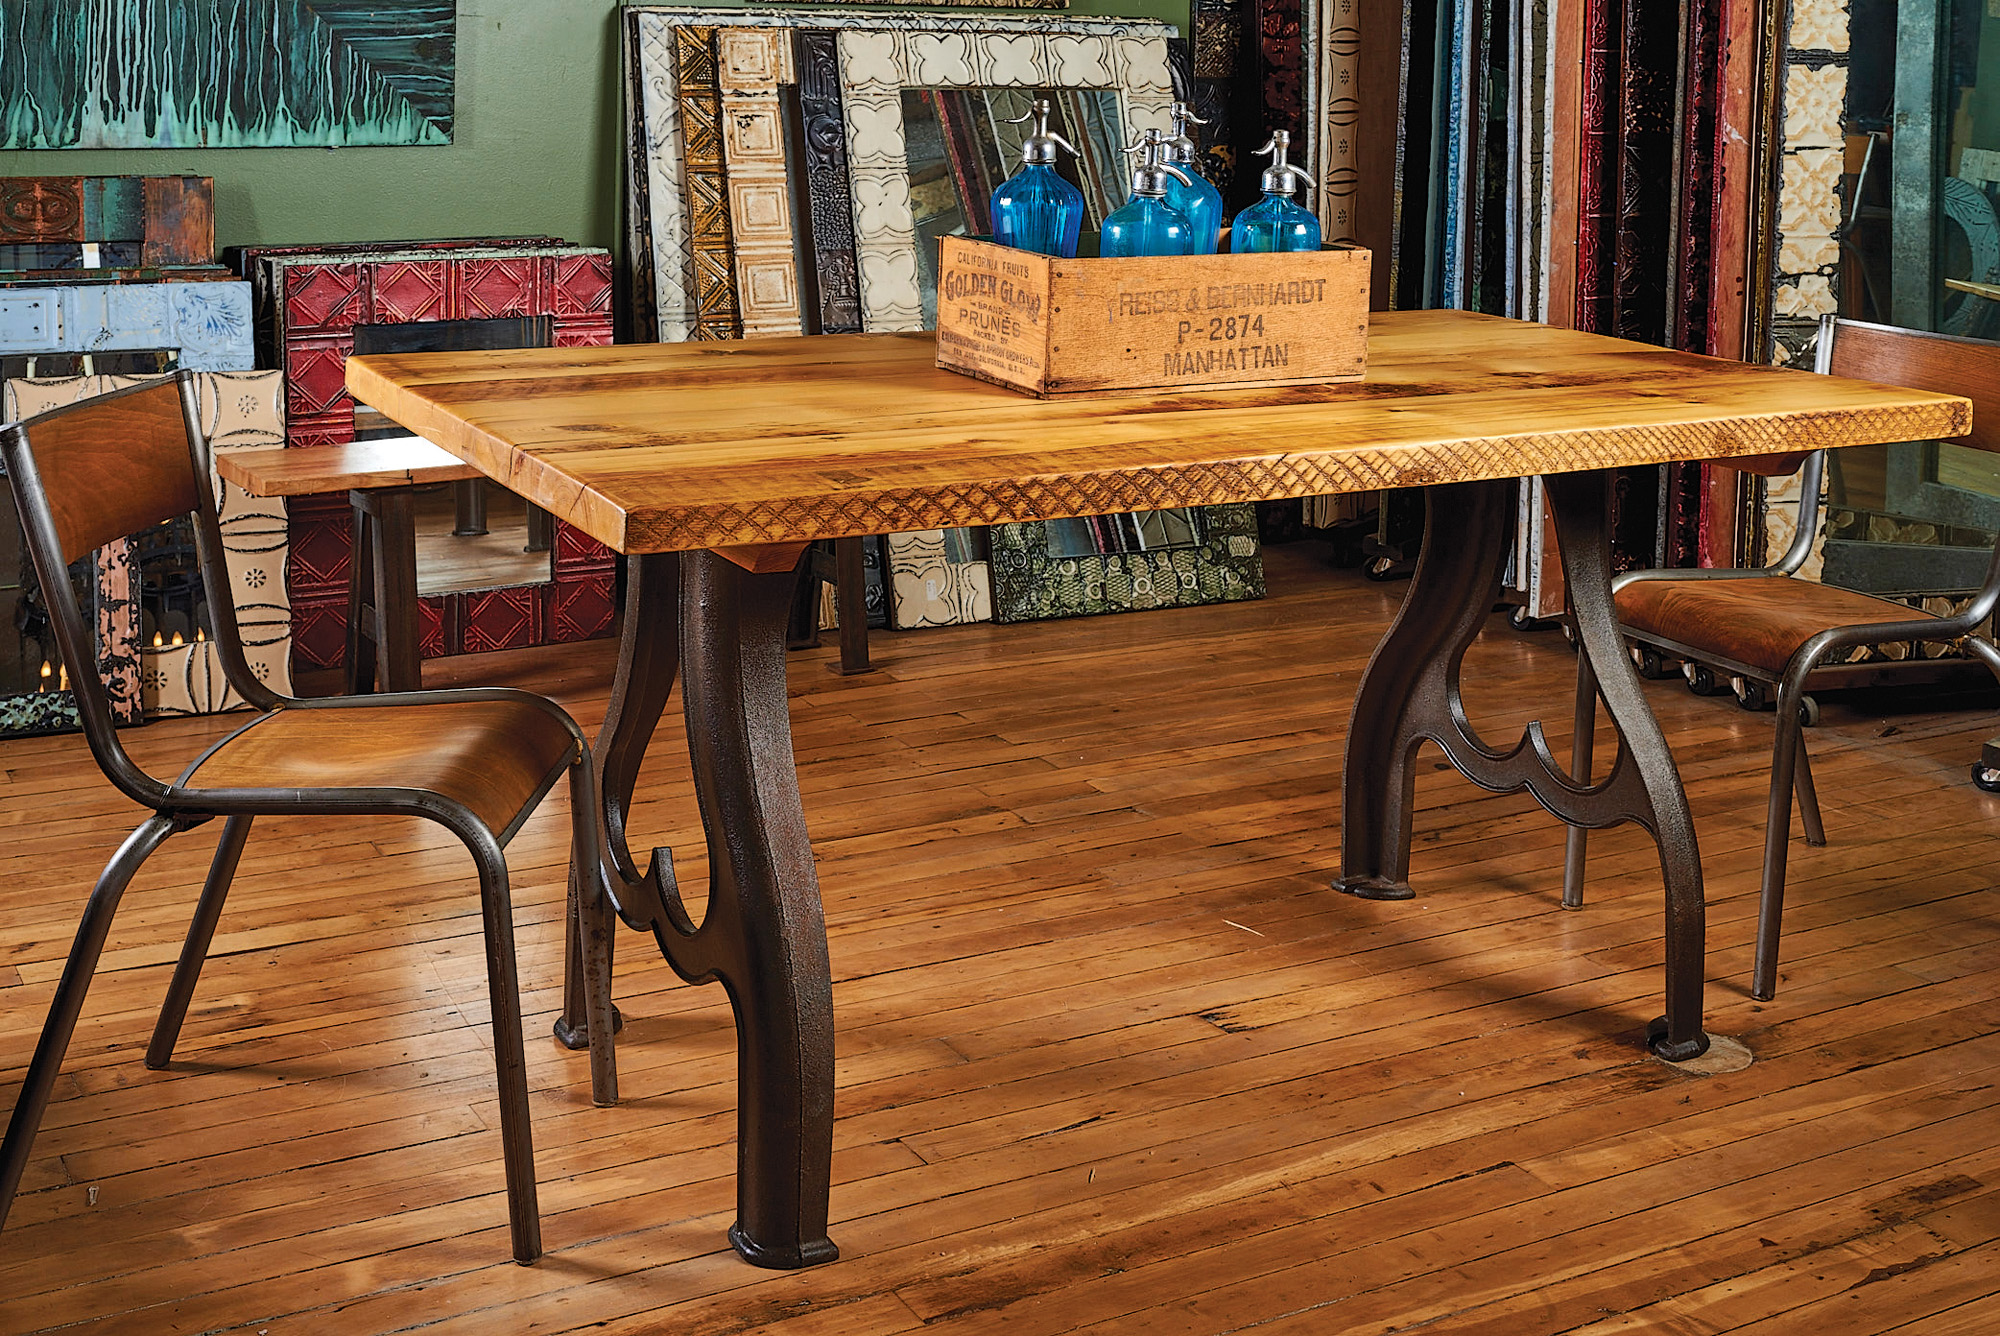 Reclaimed Wood Tables  Restoration  Design for the